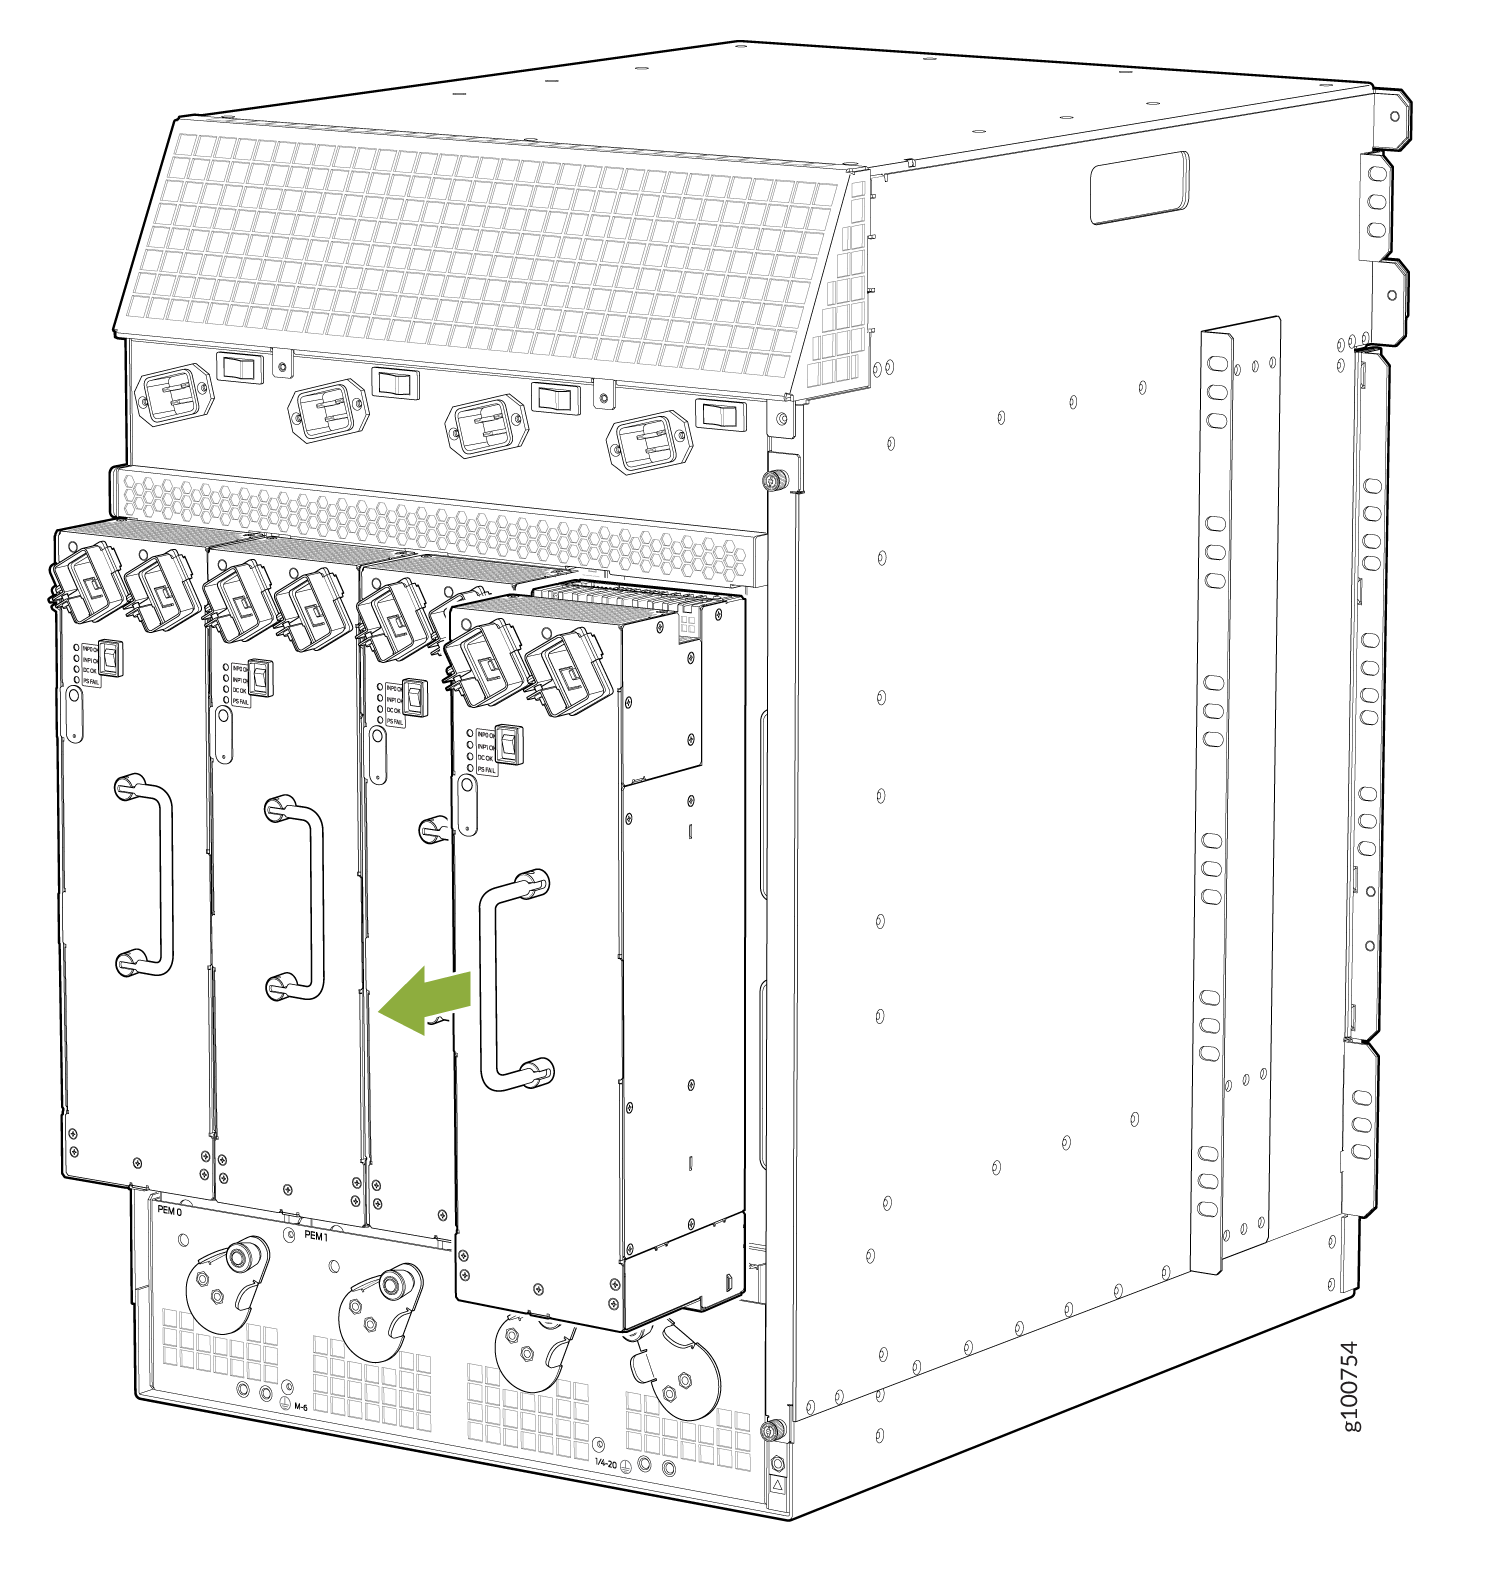 Removing a High-Capacity Second-Generation AC Power Supply